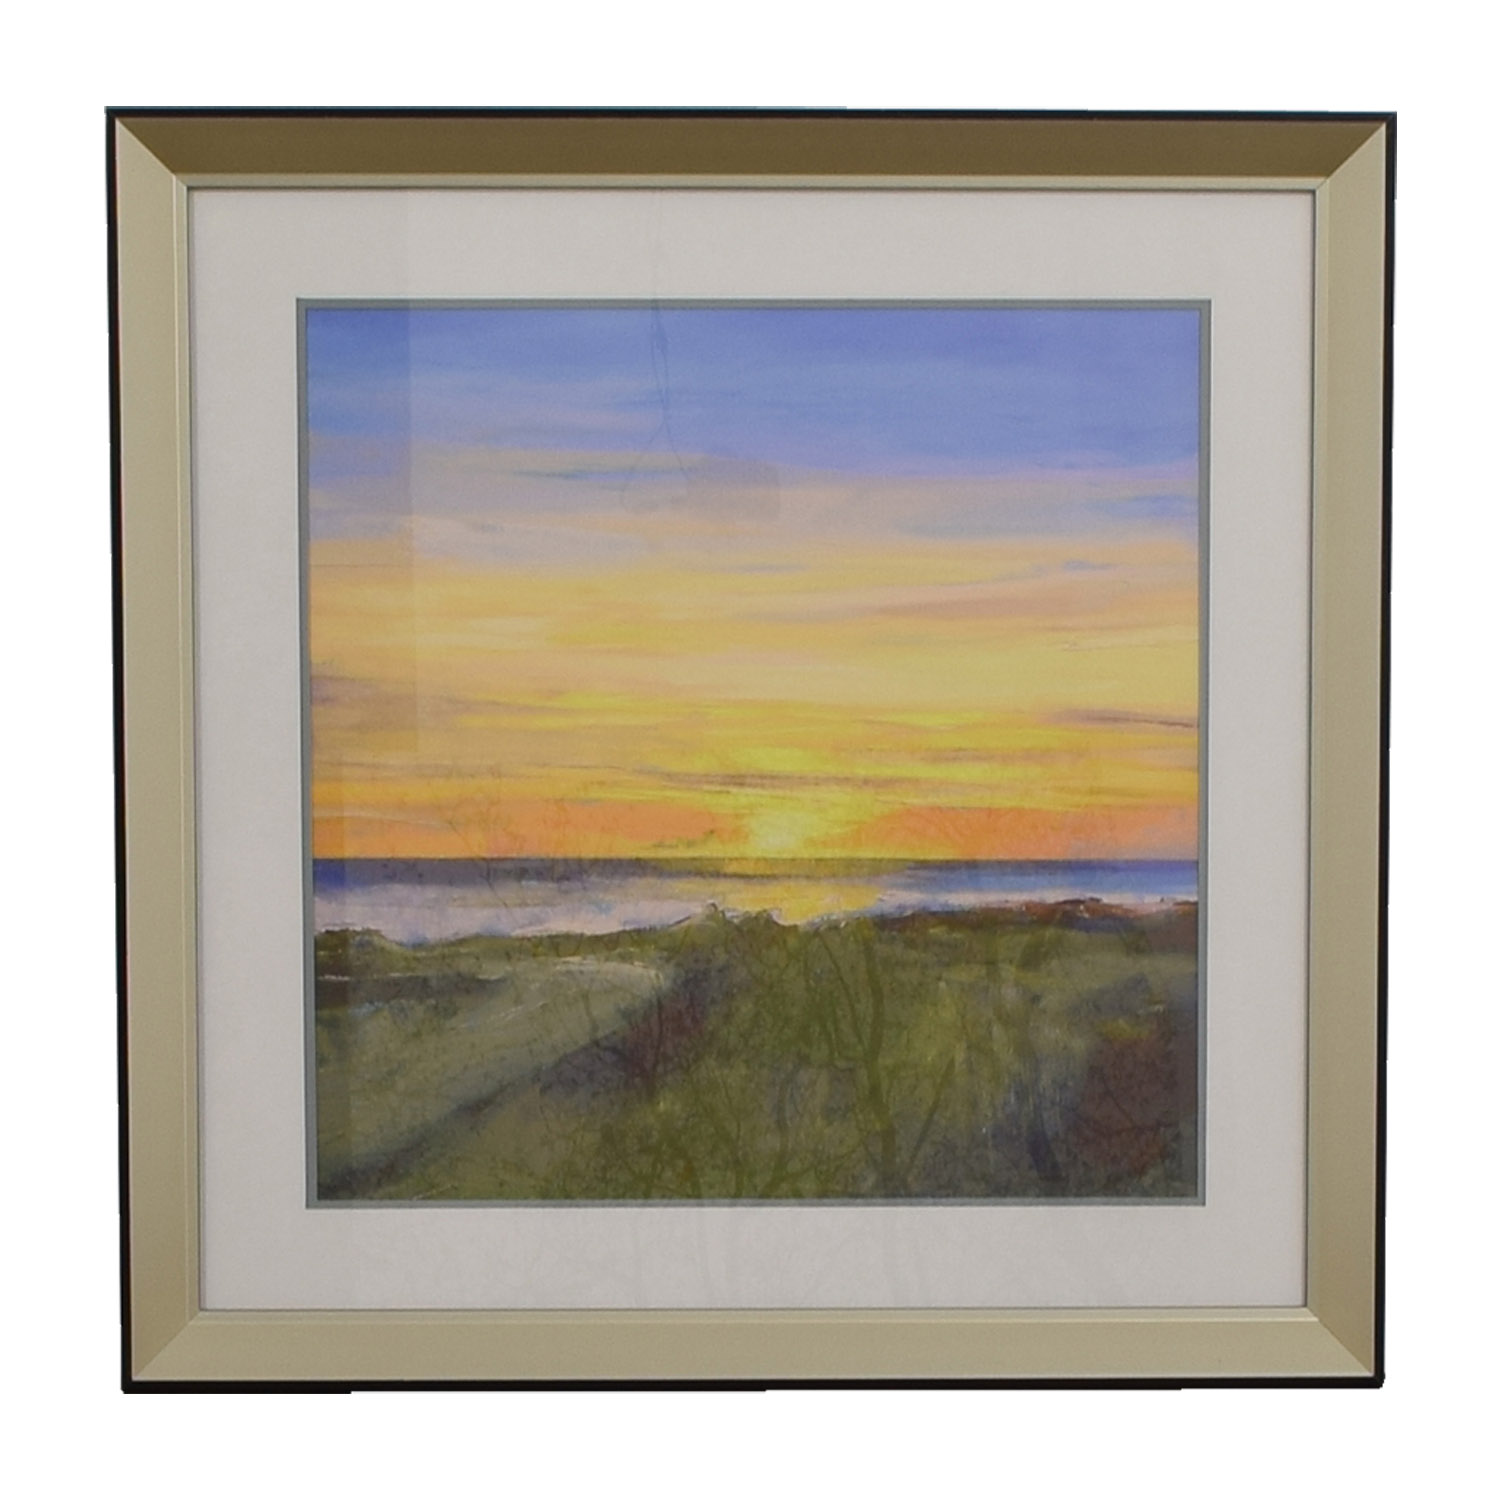 Sunrise Framed Artwork nyc